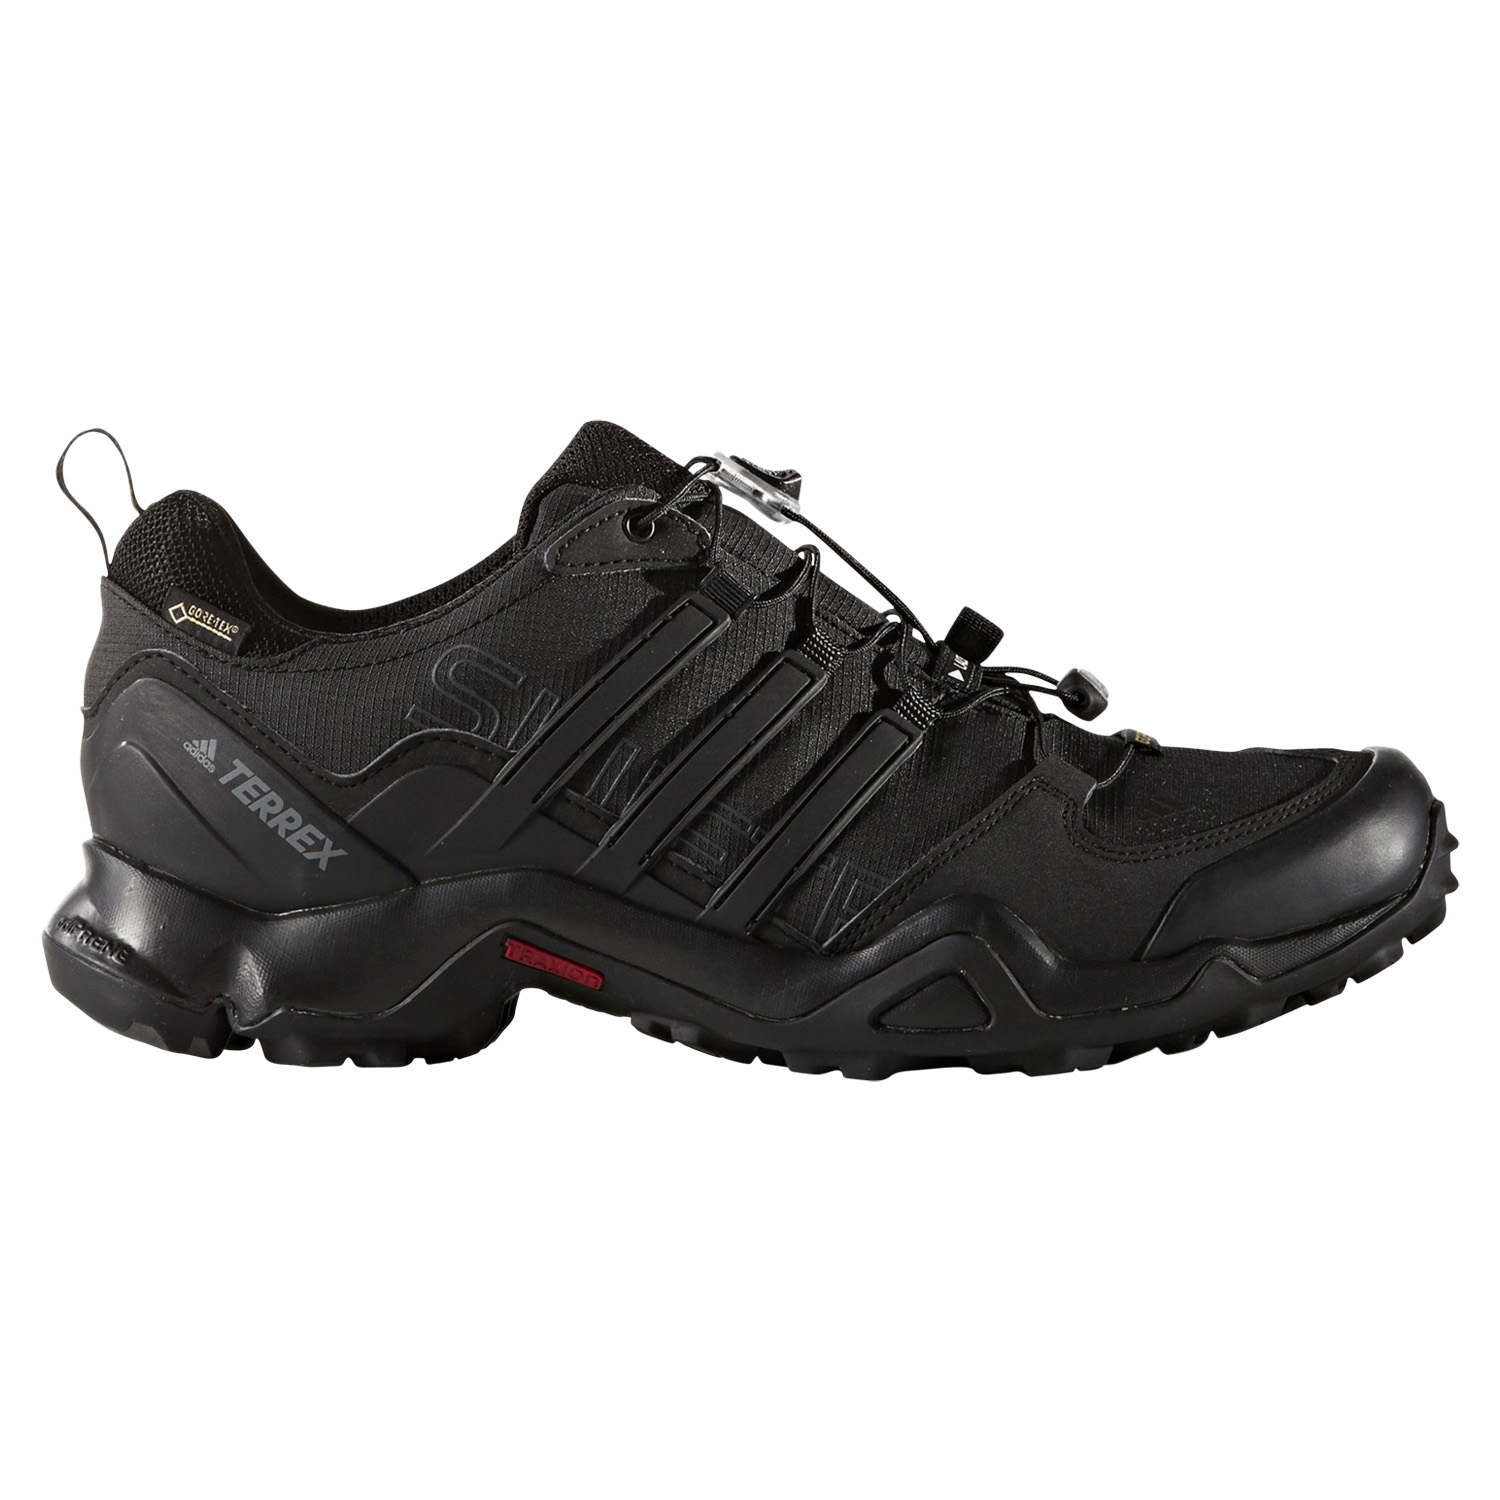 adidas terrex swift r gtx gore tex schuhe wanderschuhe trekkingschuhe herren. Black Bedroom Furniture Sets. Home Design Ideas